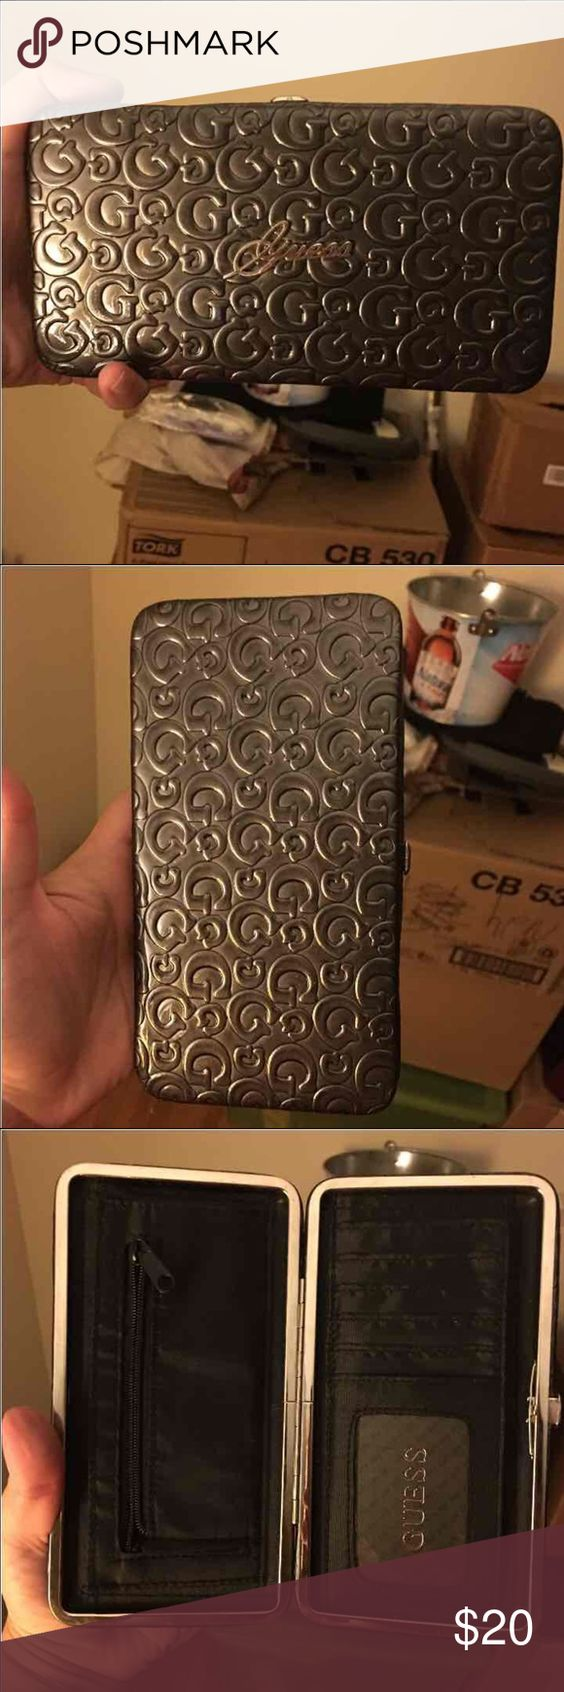 """NWOT Guess Wallet clutch Just bought this off of this app and received it today but found it has no place for my checkbook Many slots for cards, zippered pocket, and 2 pockets on either side No flaws, never used Dark gray with """"G"""" logo scroll on it and silver Guess emblem on front So cute wish I could use it Smoke and pet free home Asking for what I paid for it FREE SHIPPING!  Check out my closet for more great items BUNDLE AND SAVE....ask me how! Thank you for stopping by Guess Bags Wallets"""